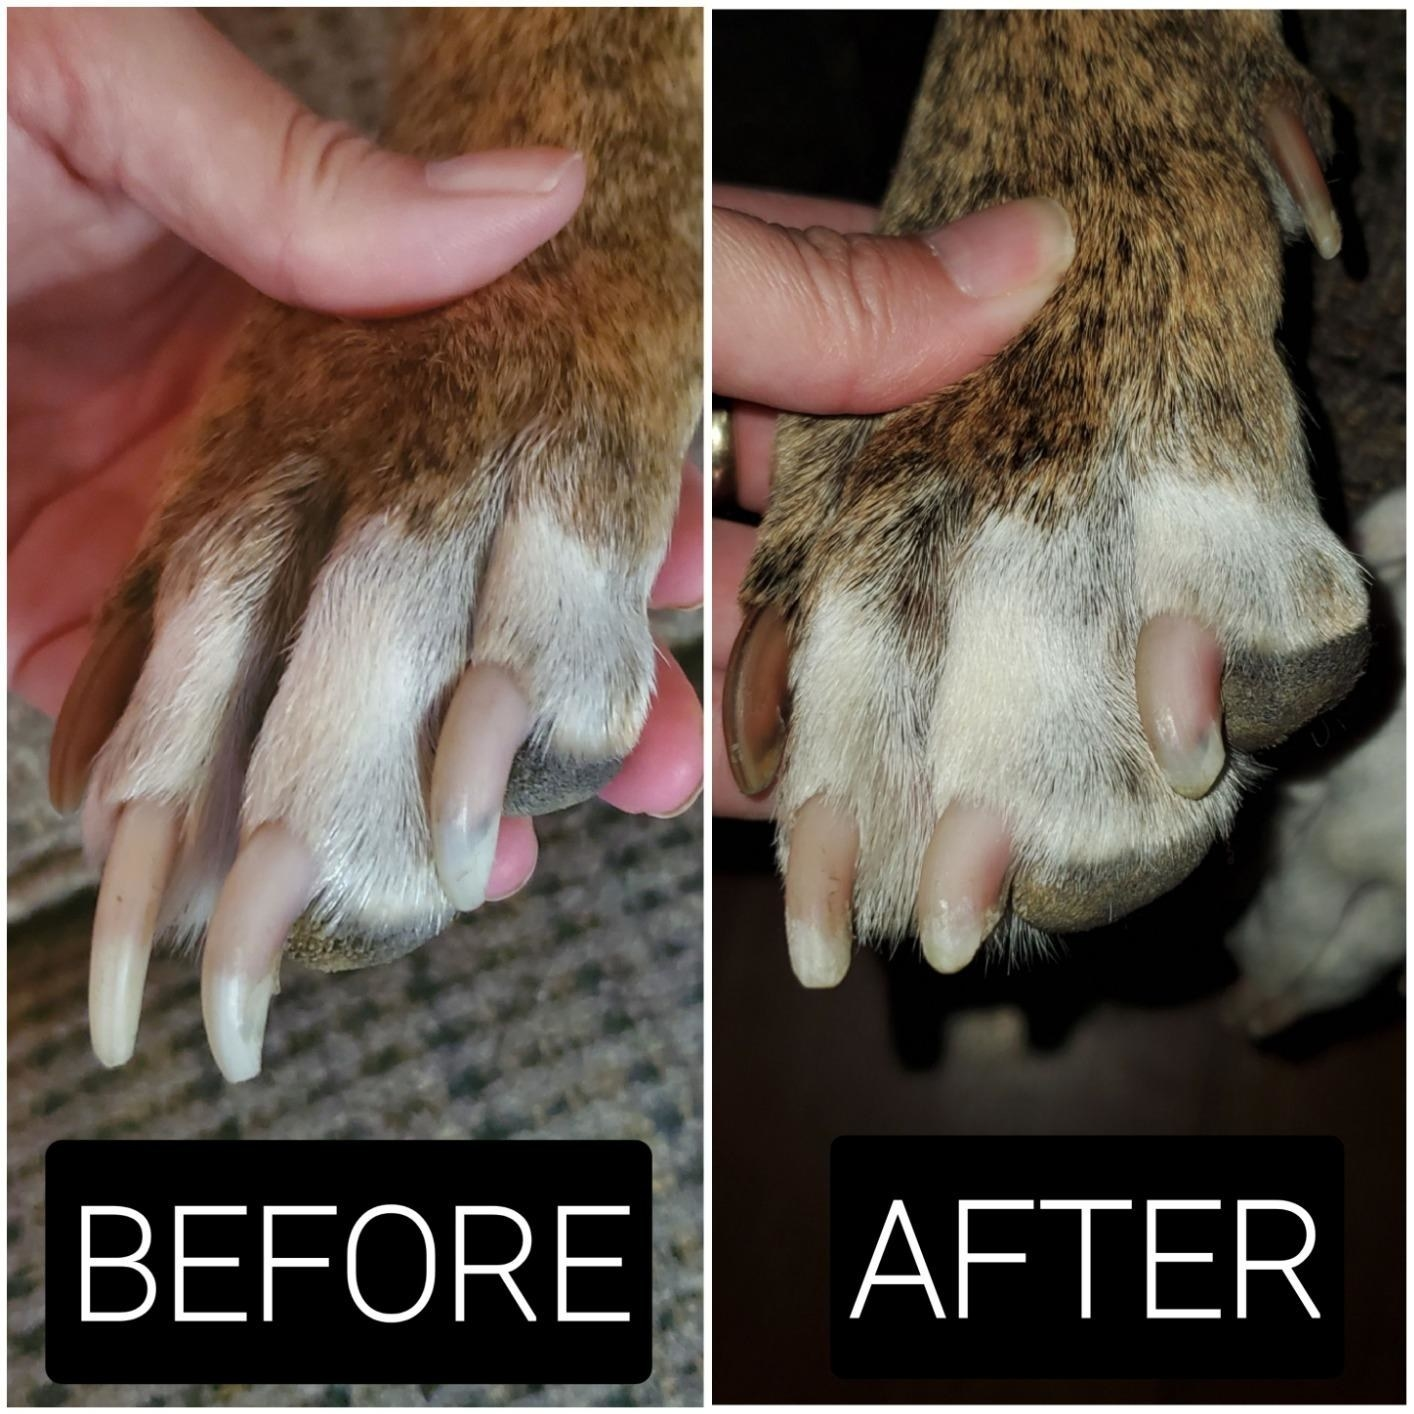 Reviewer's photo of their dog's nails before and after using the nail grinder